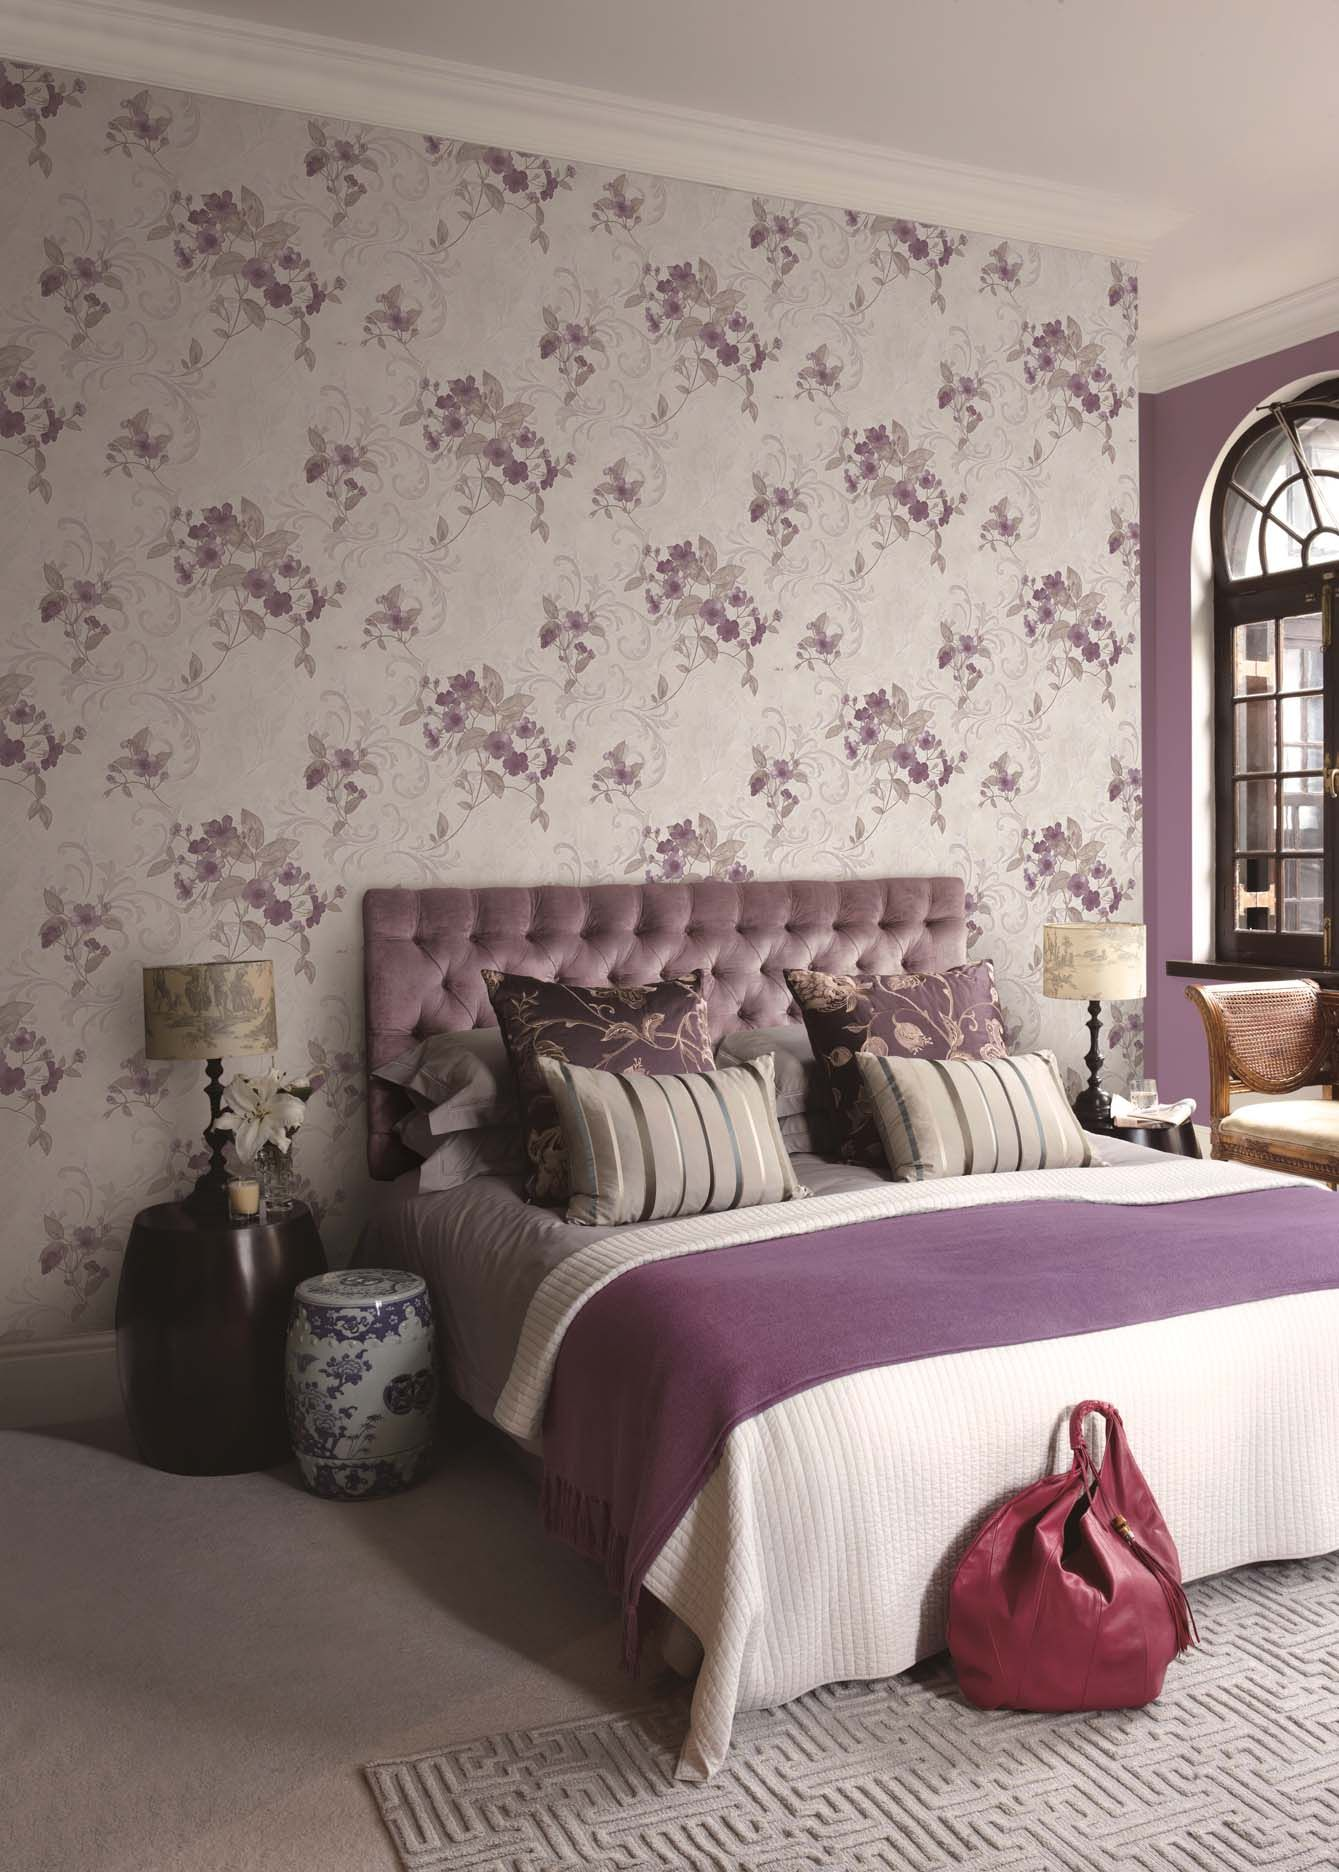 Floral Wallpaper For Walls 77109 3 Bedroom Design Wallp